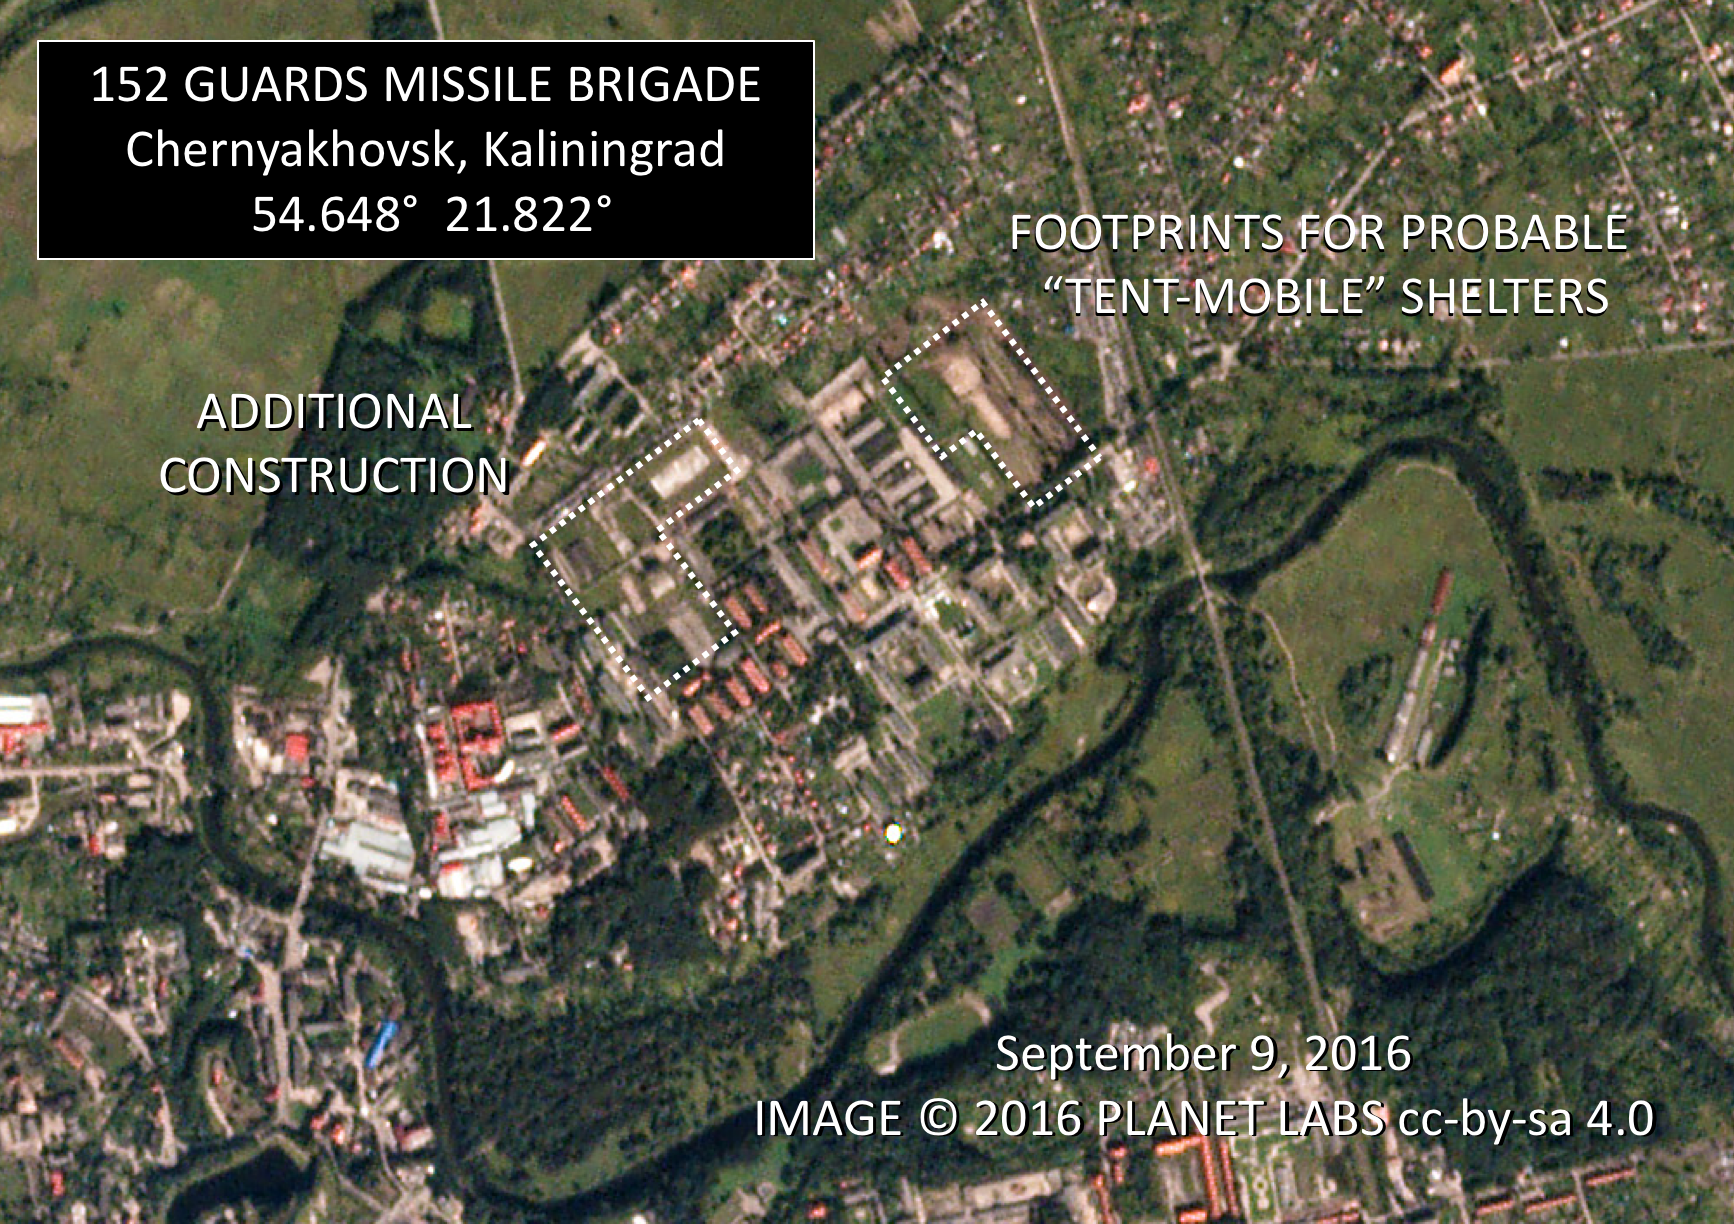 Russia Seen Moving New Missiles To Eastern Europe 905 WESA